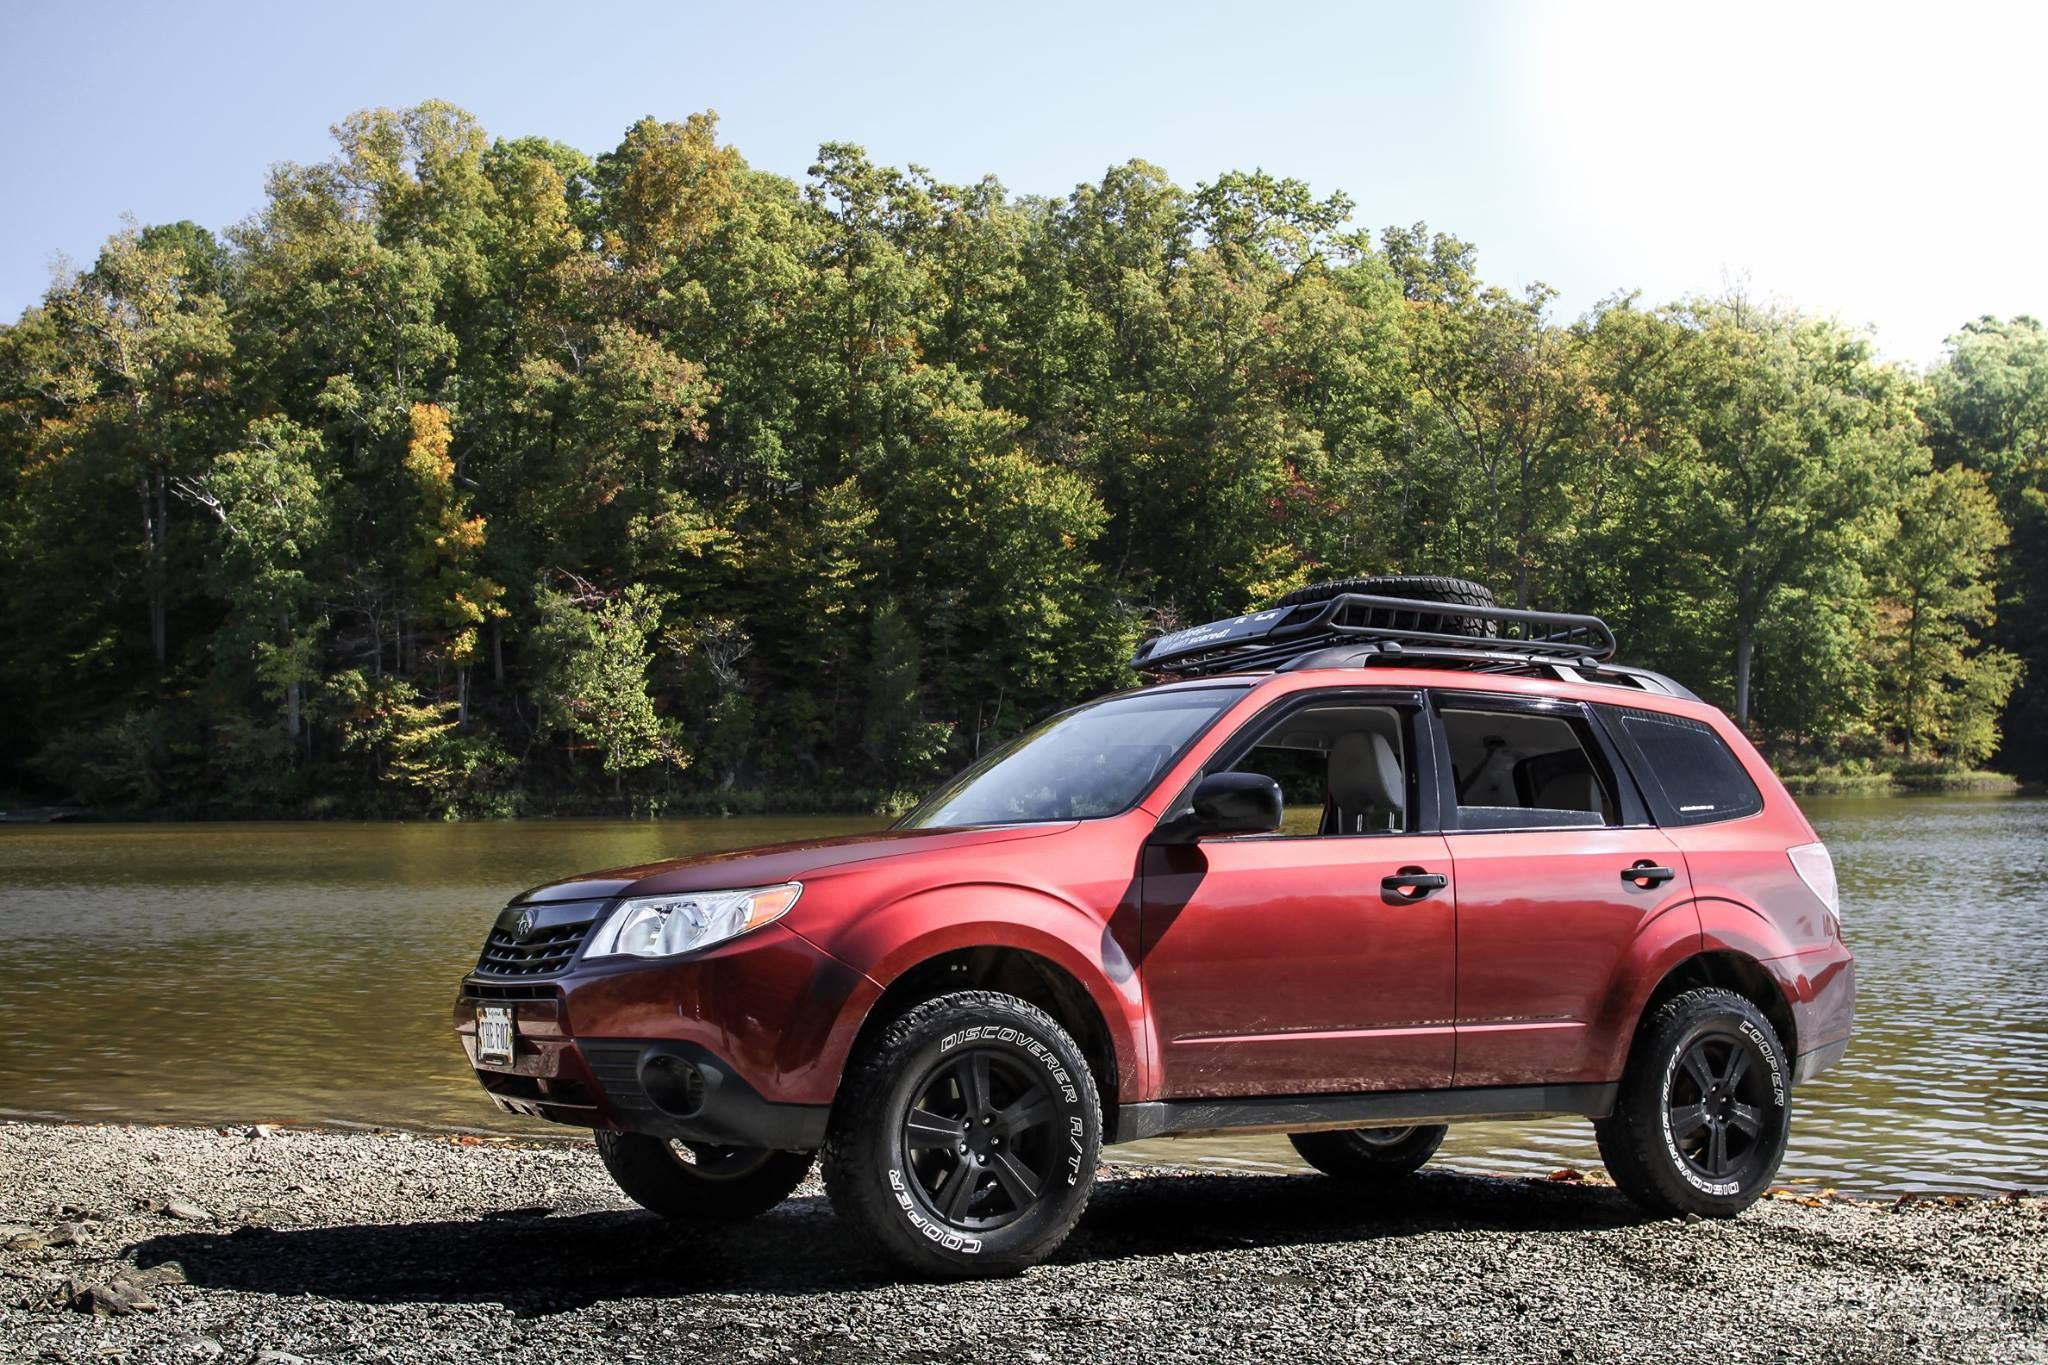 sh forester hot girls wallpaper subaru forester shop manual free download subaru forester repair manual free download